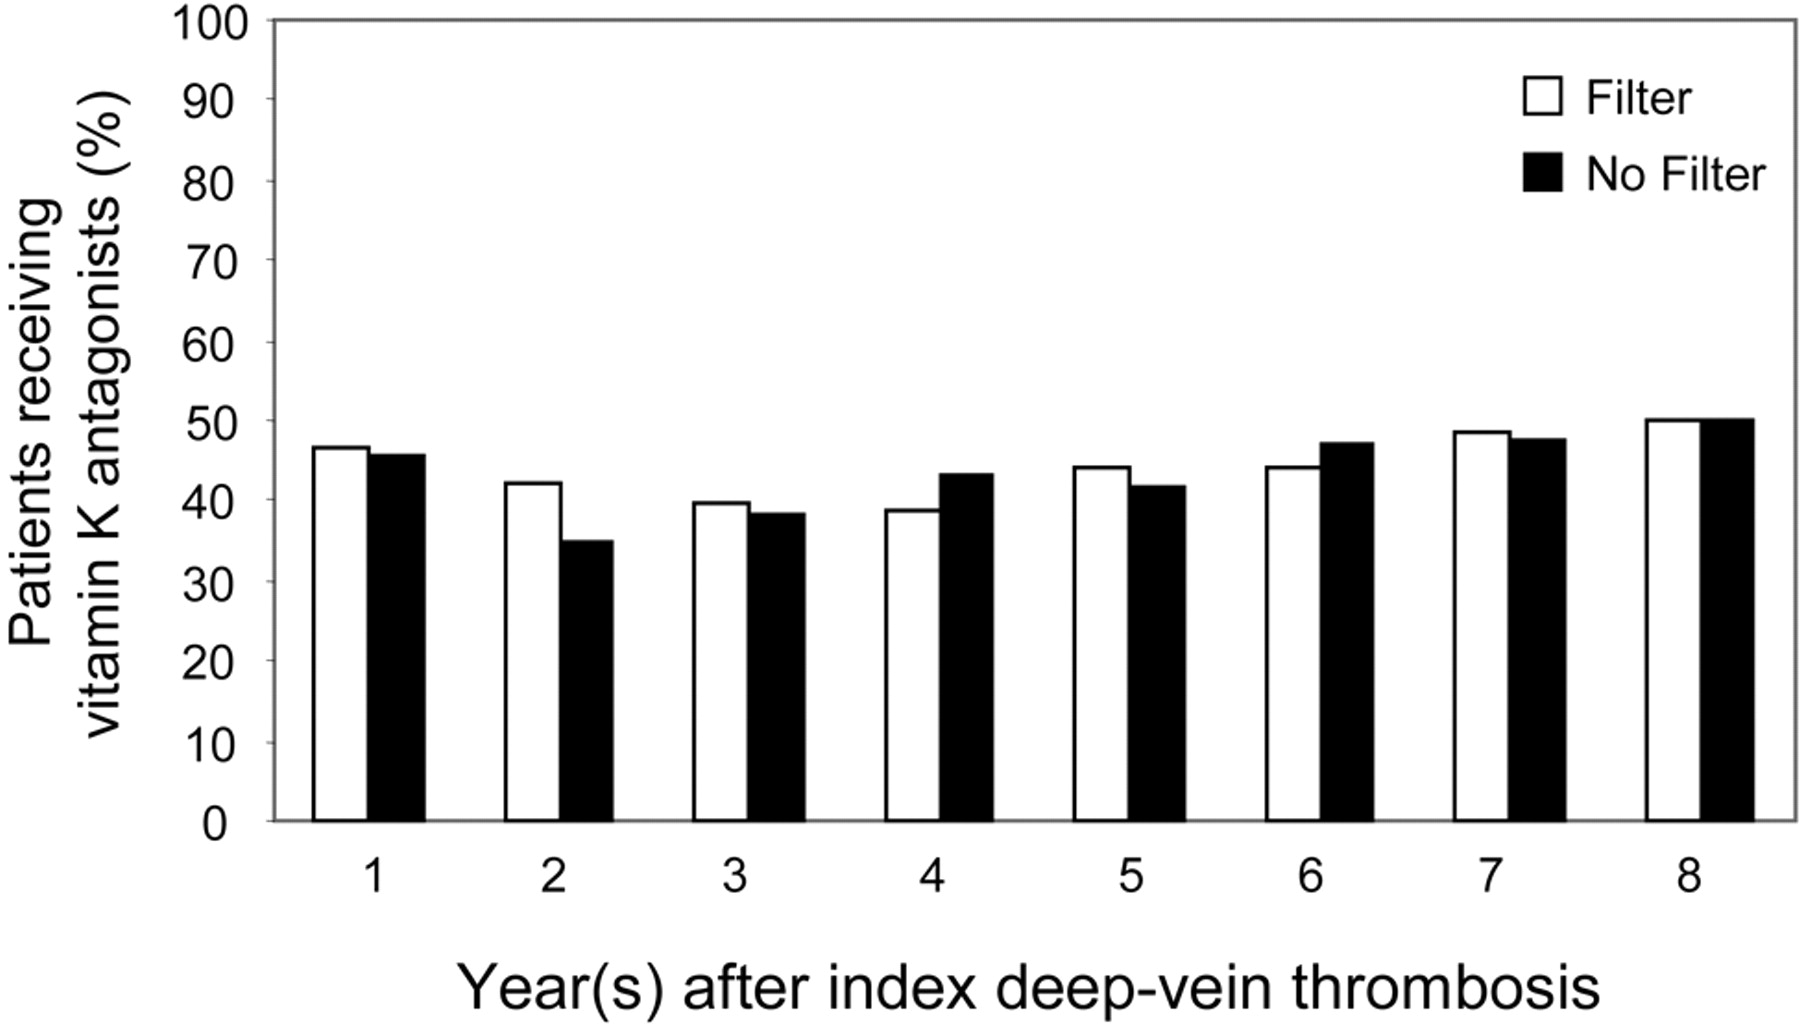 Eight Year Follow Up Of Patients With Permanent Vena Cava